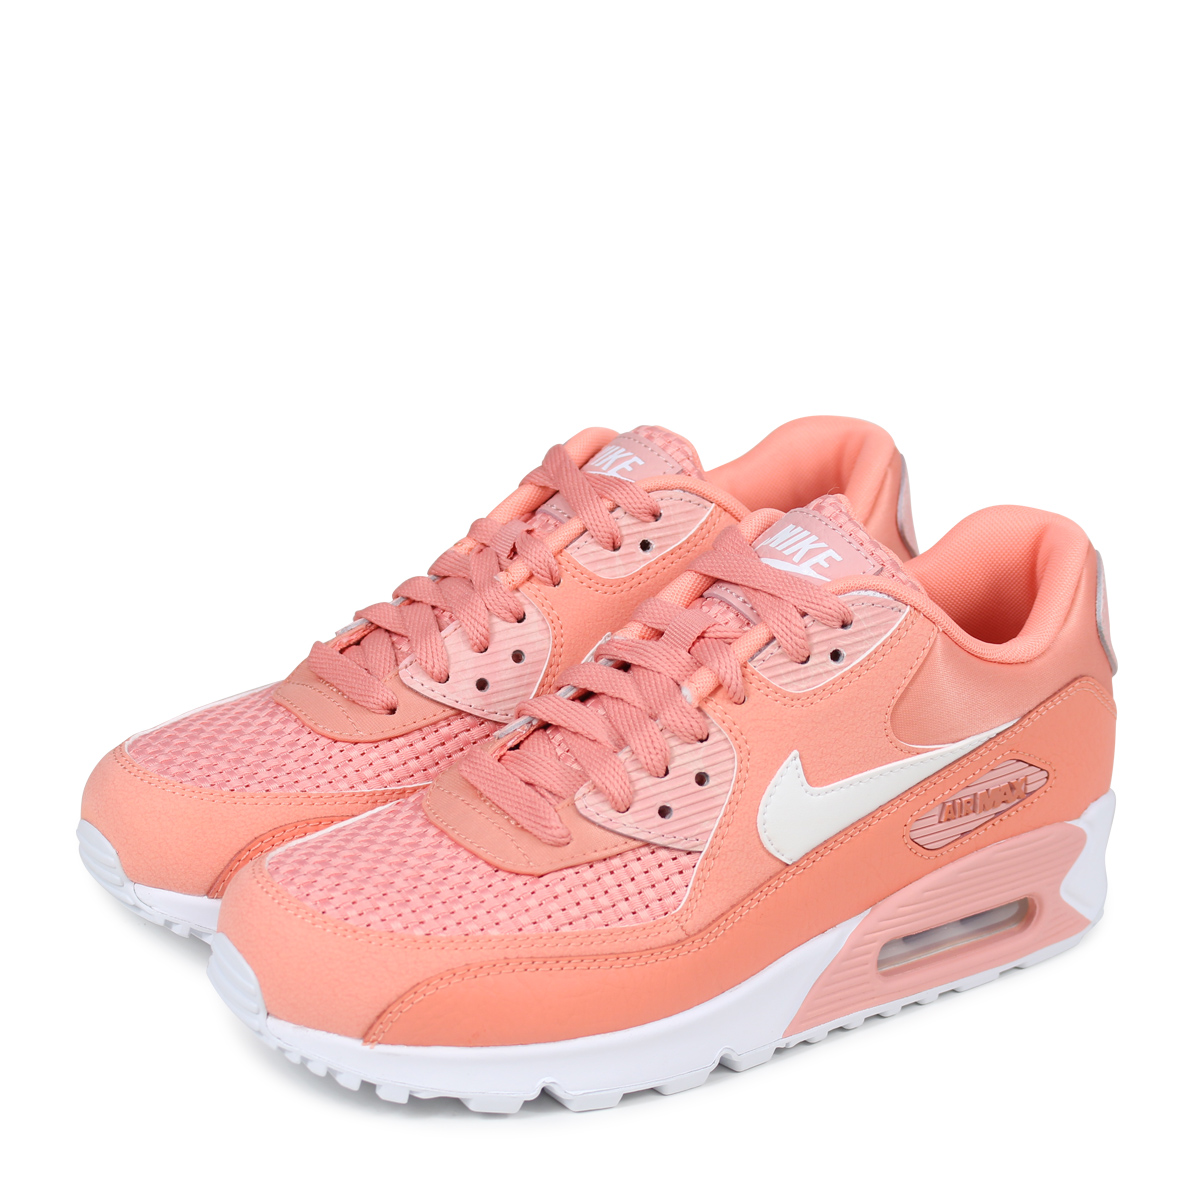 NIKE WMNS AIR MAX 90 SE Kie Ney AMAX 90 Lady's sneakers 881,105 604 pink [load planned Shinnyu load in reservation product 512 containing] [185]